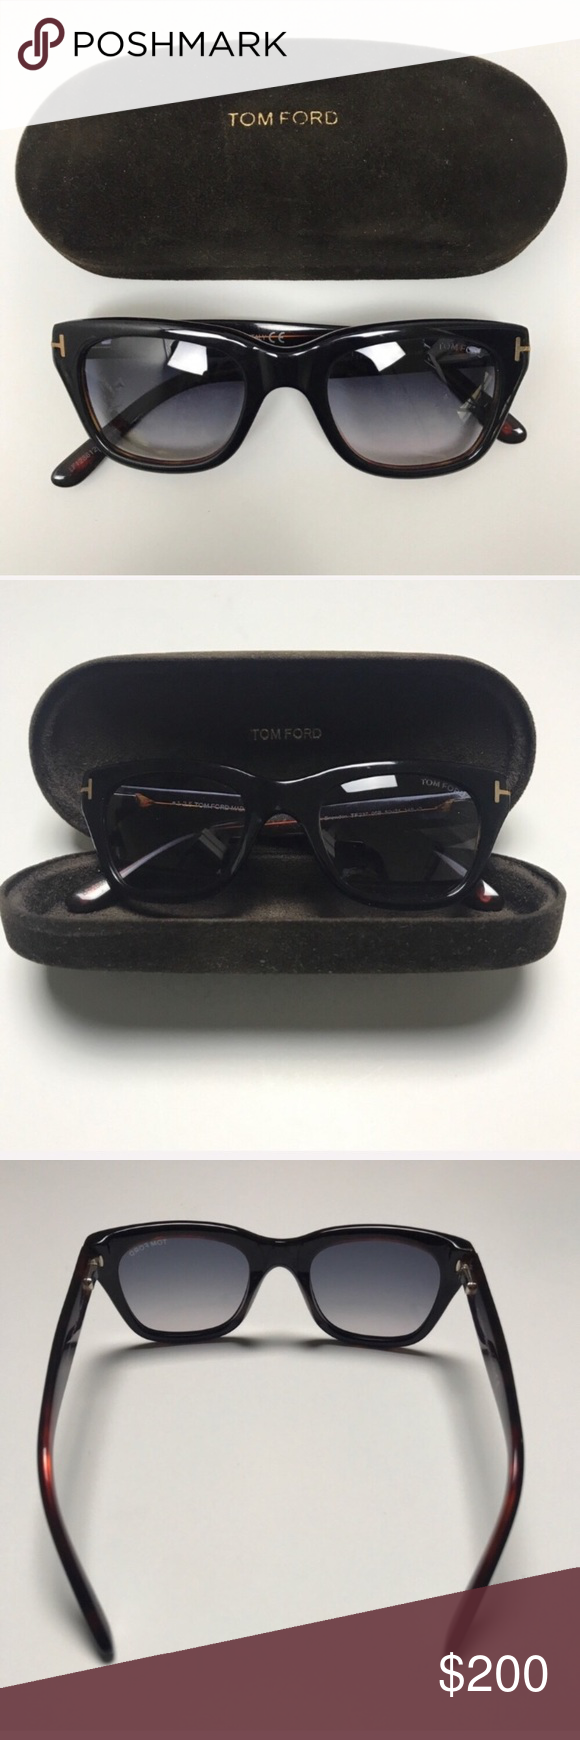 9799000bc4840 Tom Ford Snowdon Sunglasses Tom Ford Snowdon Sunglasses ▫️Case included  ▫️Great Preowned Condition ▫